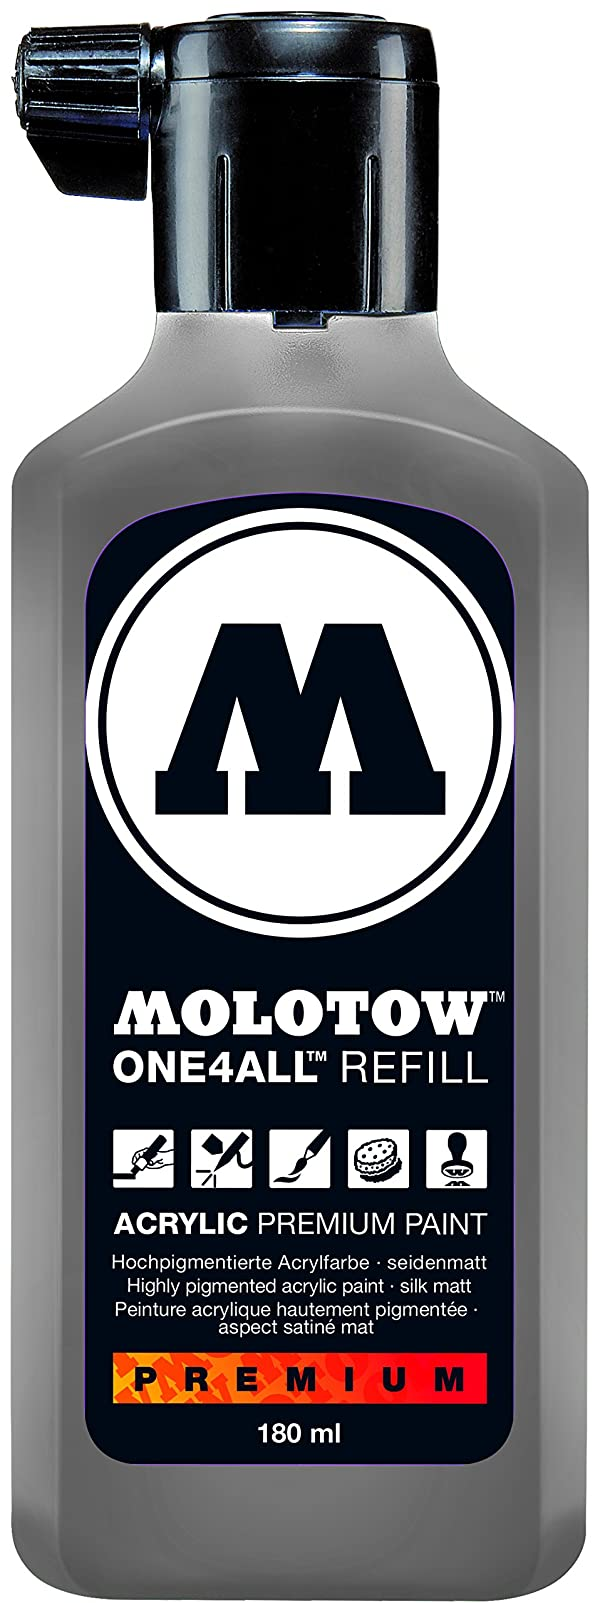 Molotow ONE4ALL Acrylic Paint Refill, For Molotow ONE4ALL Paint Marker, Cool Grey Pastel, 180ml Bottle, 1 Each (692.203) (Color: 203 Cool Grey, Tamaño: Refill - 180ml)